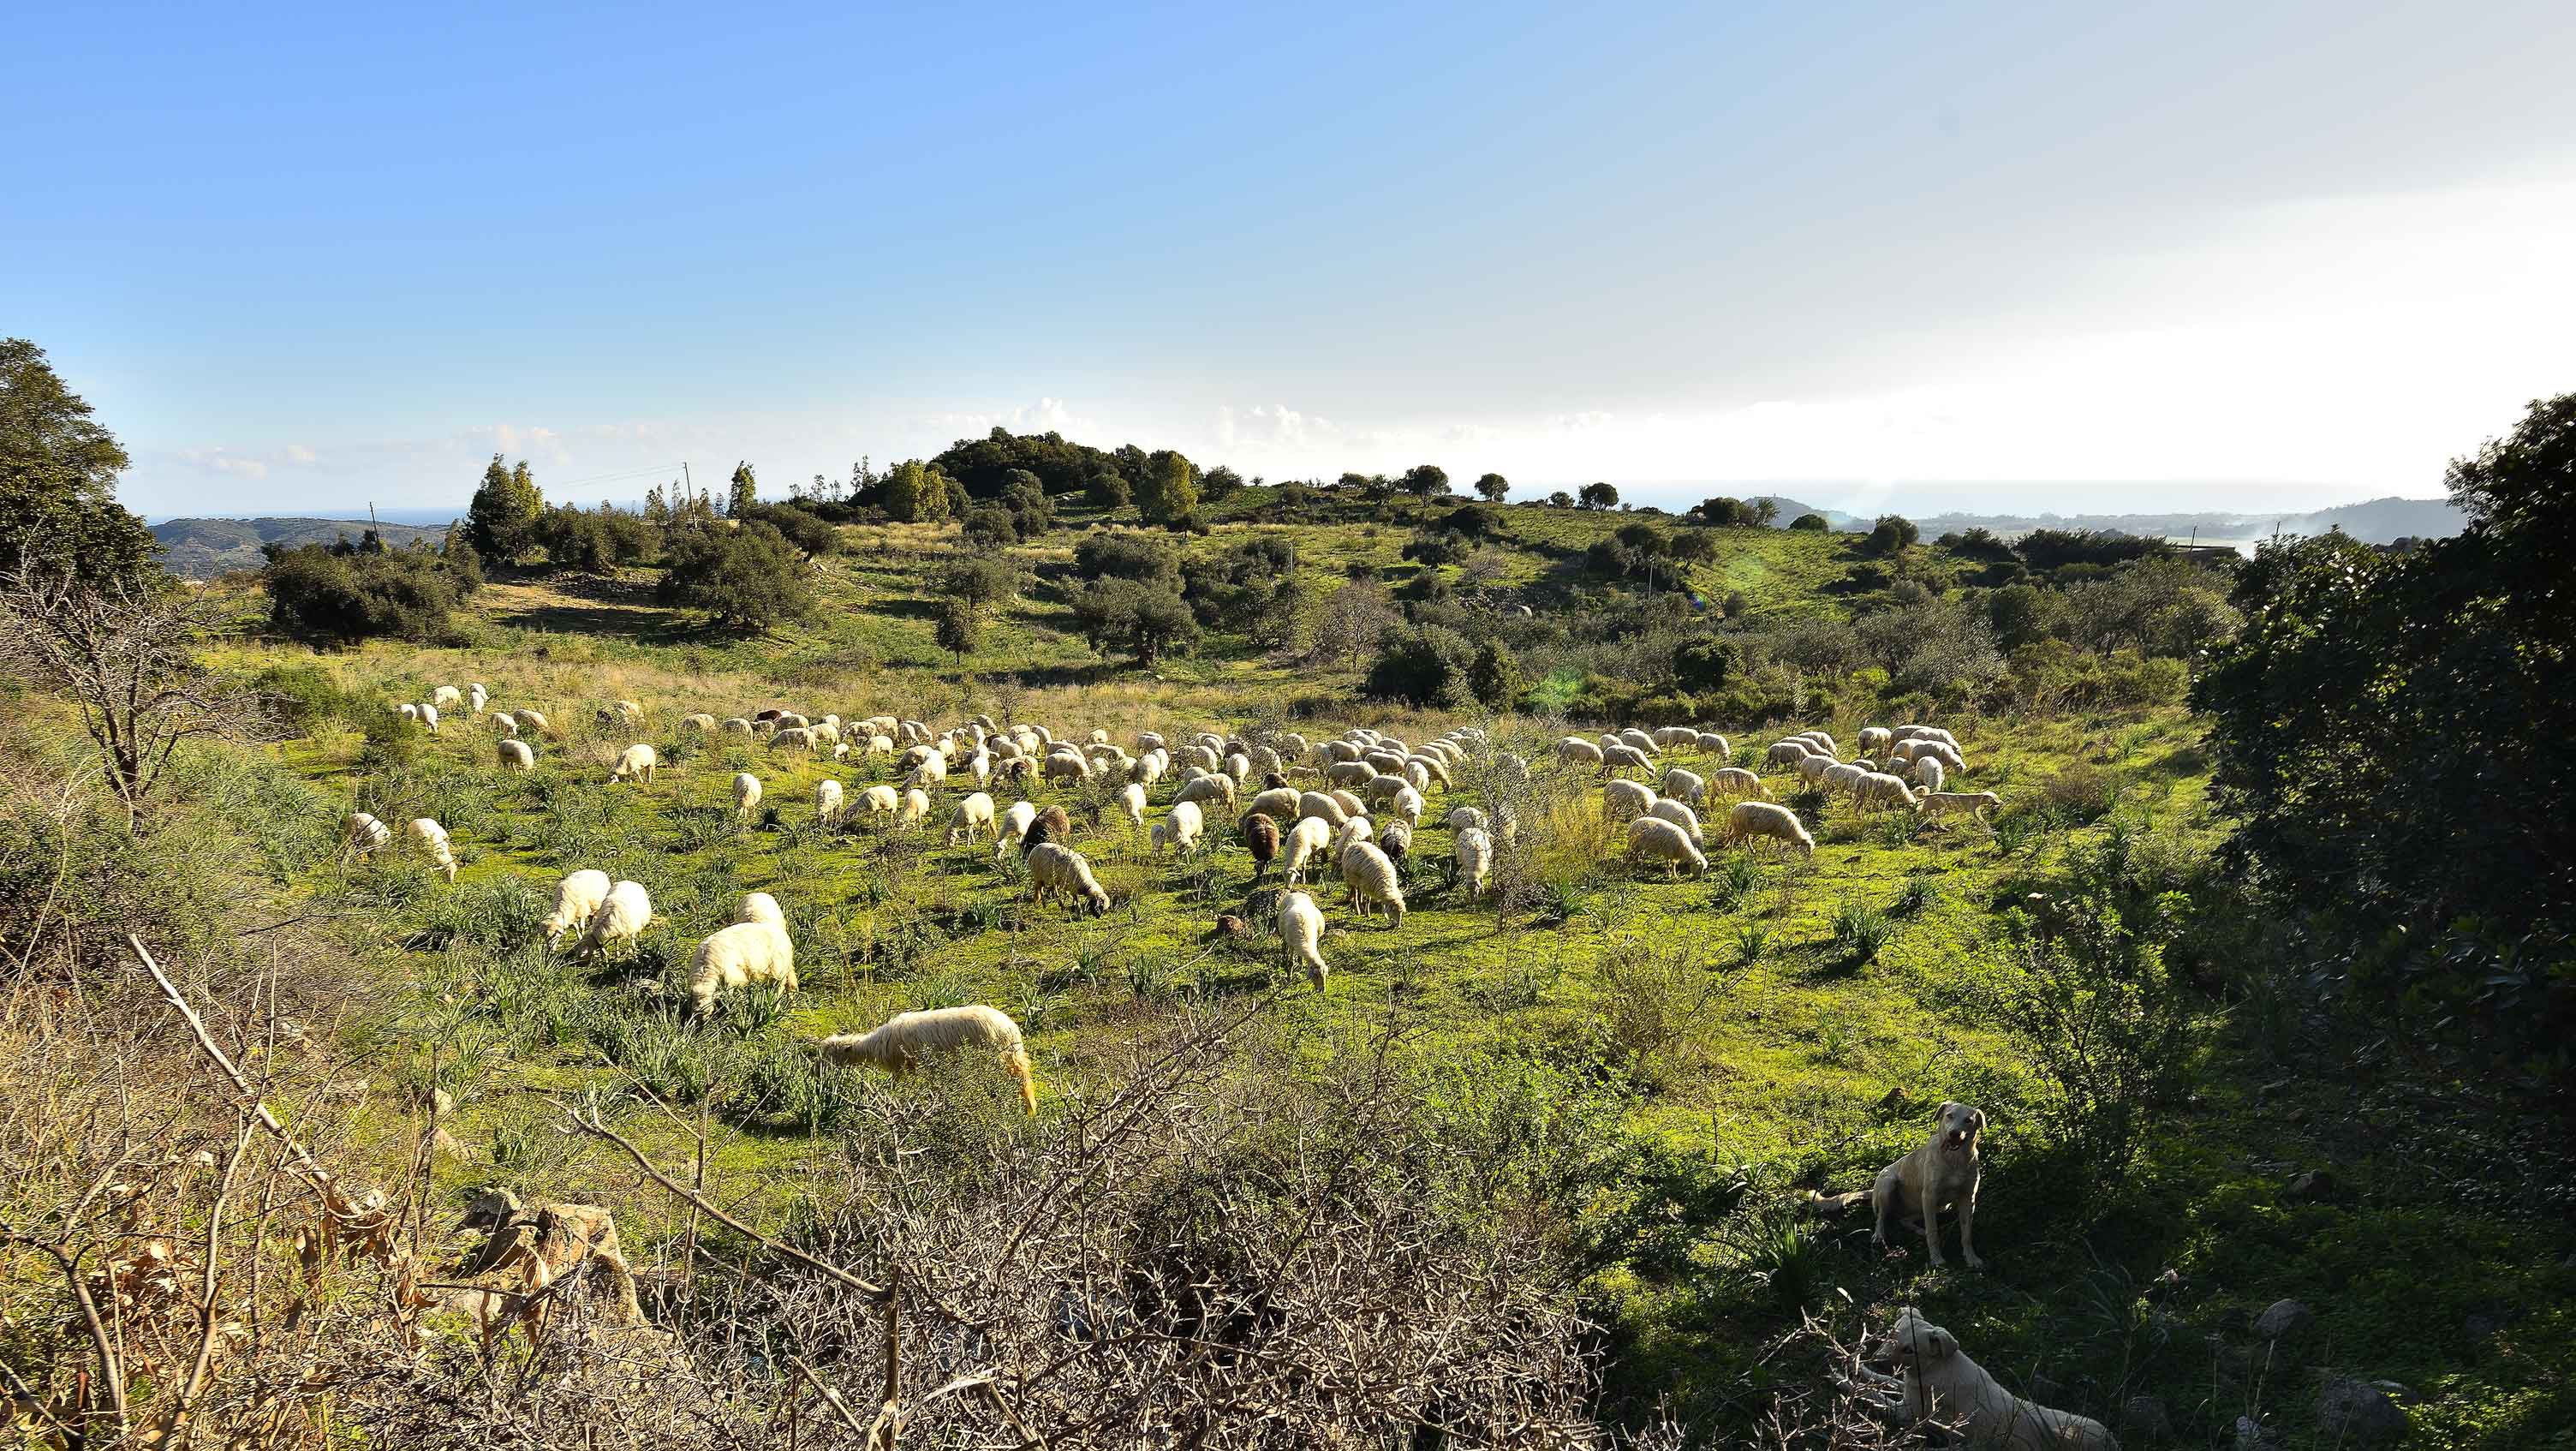 A lot of sheeps in Sardinia